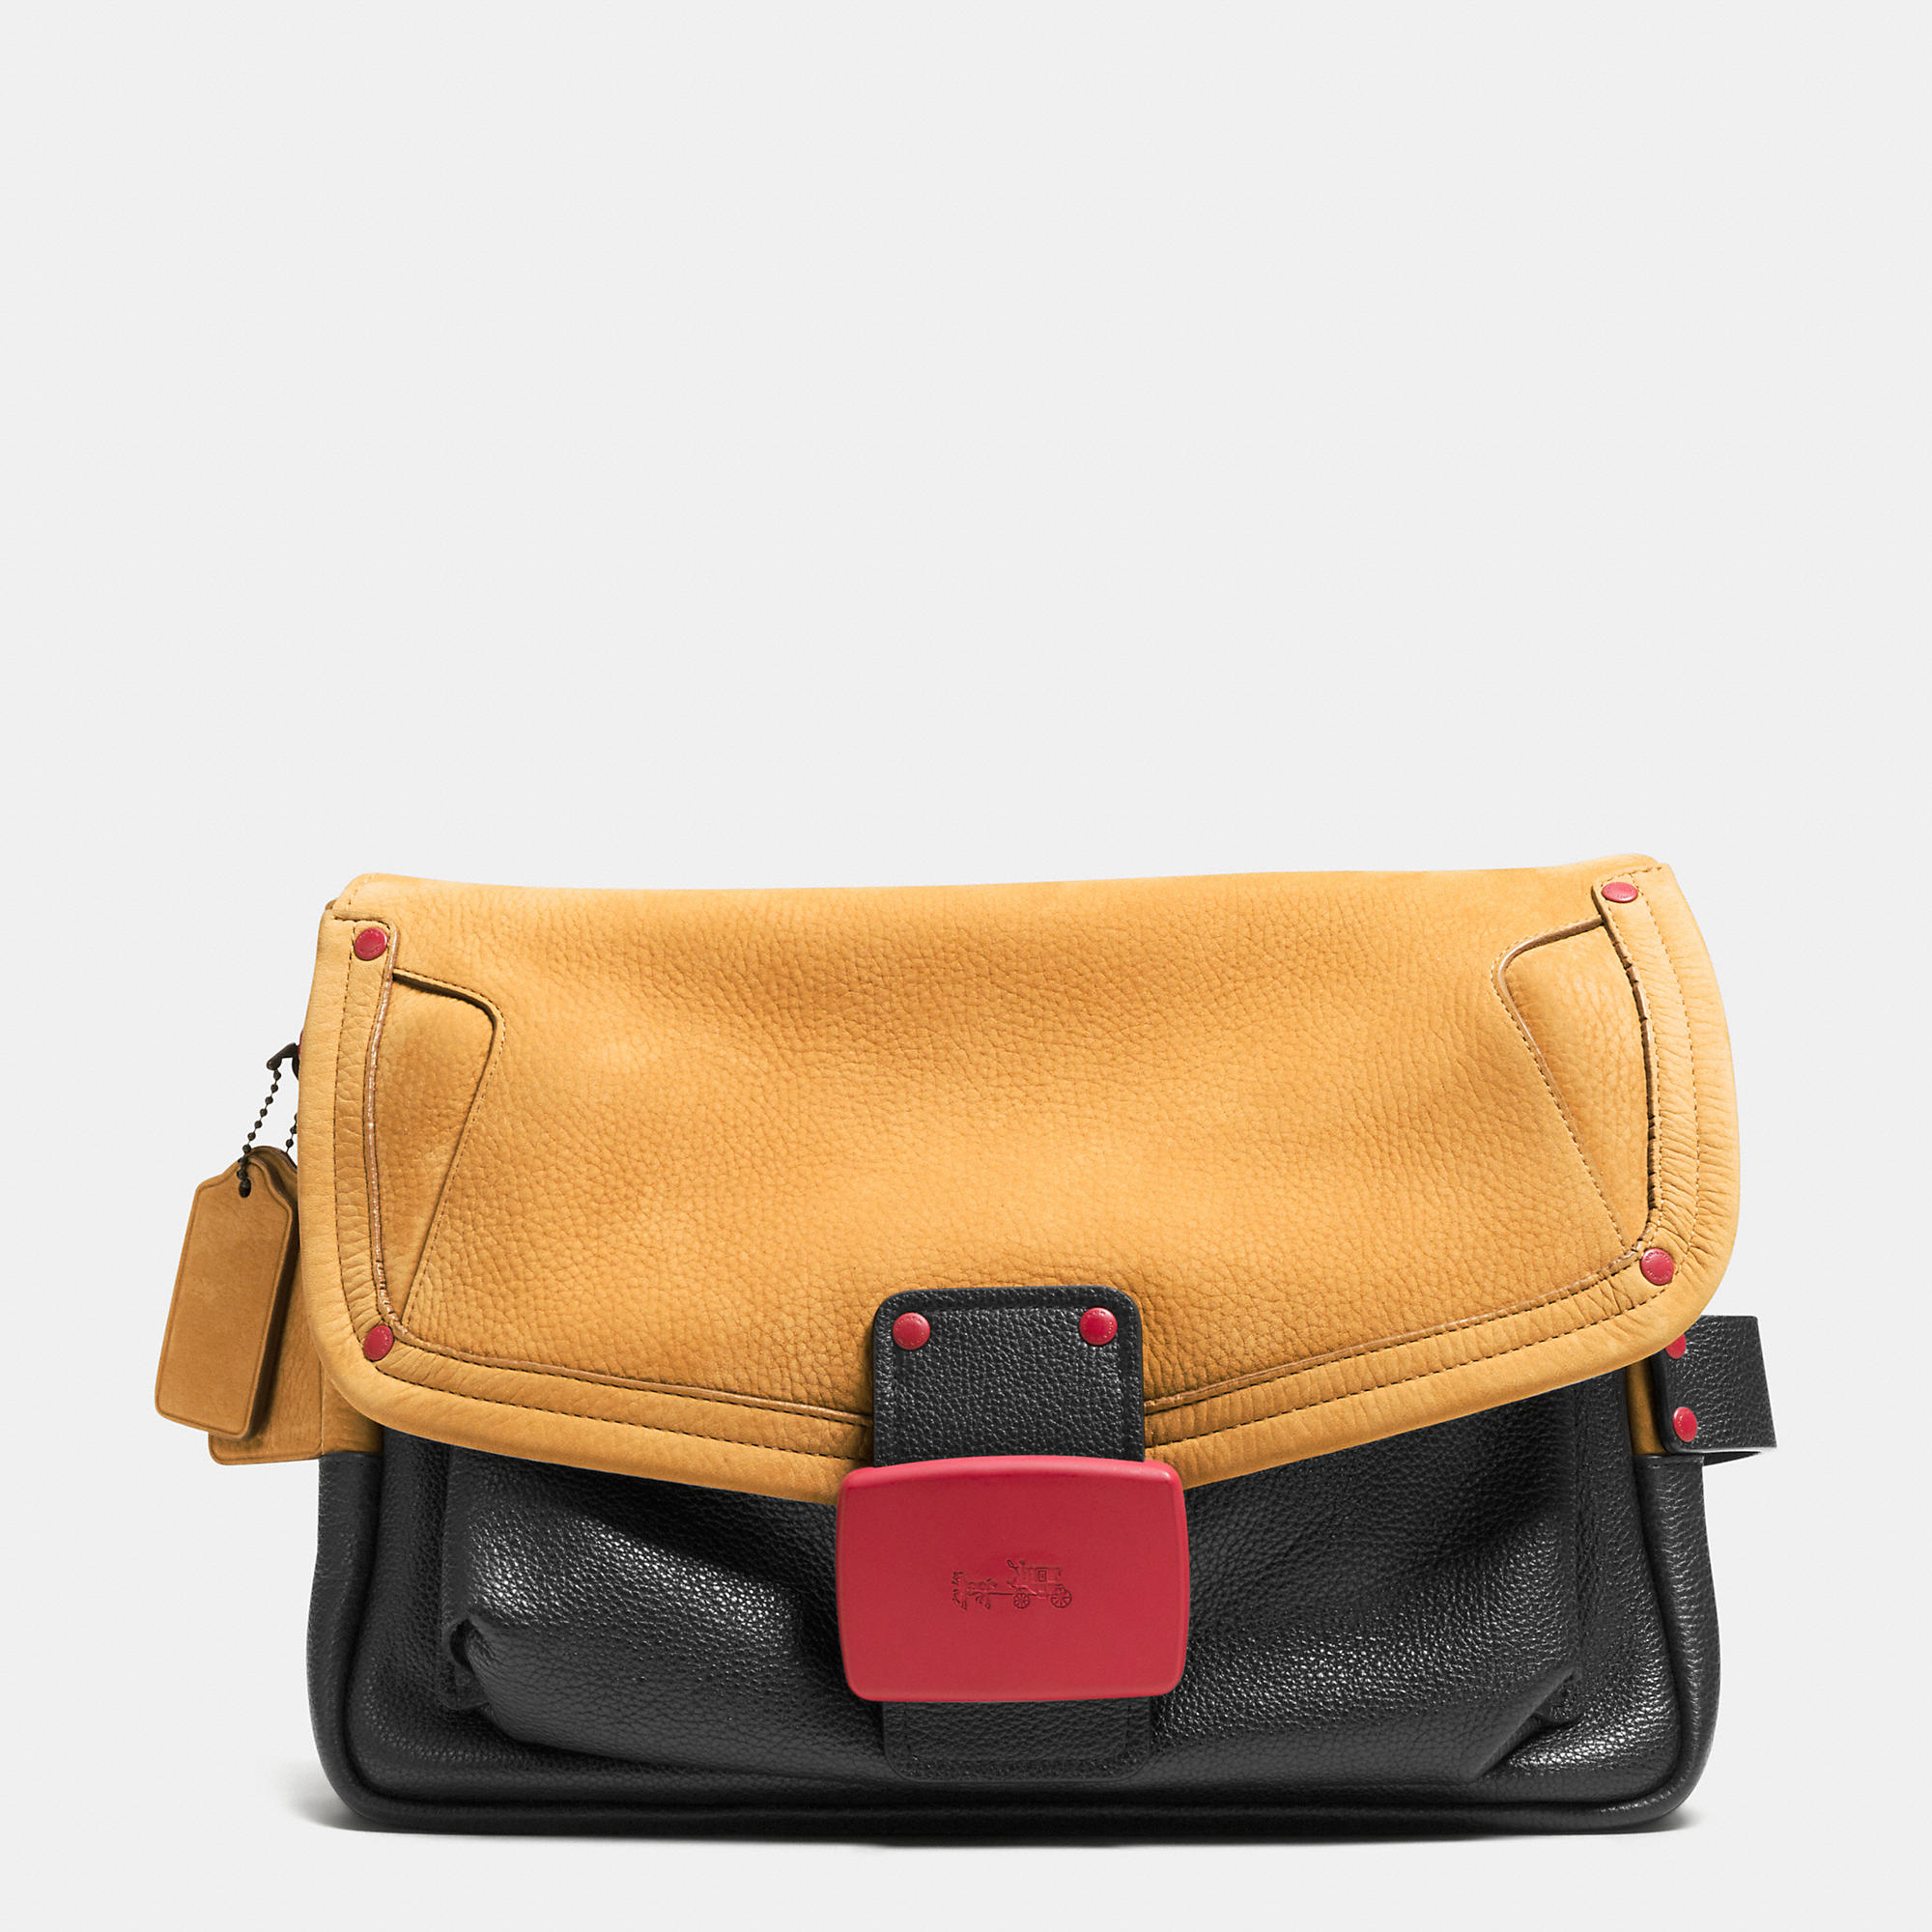 Coach Rhyder Flap Clutch in Workwear Leather | Fancy Friday – Coach Fall 2014 Collection